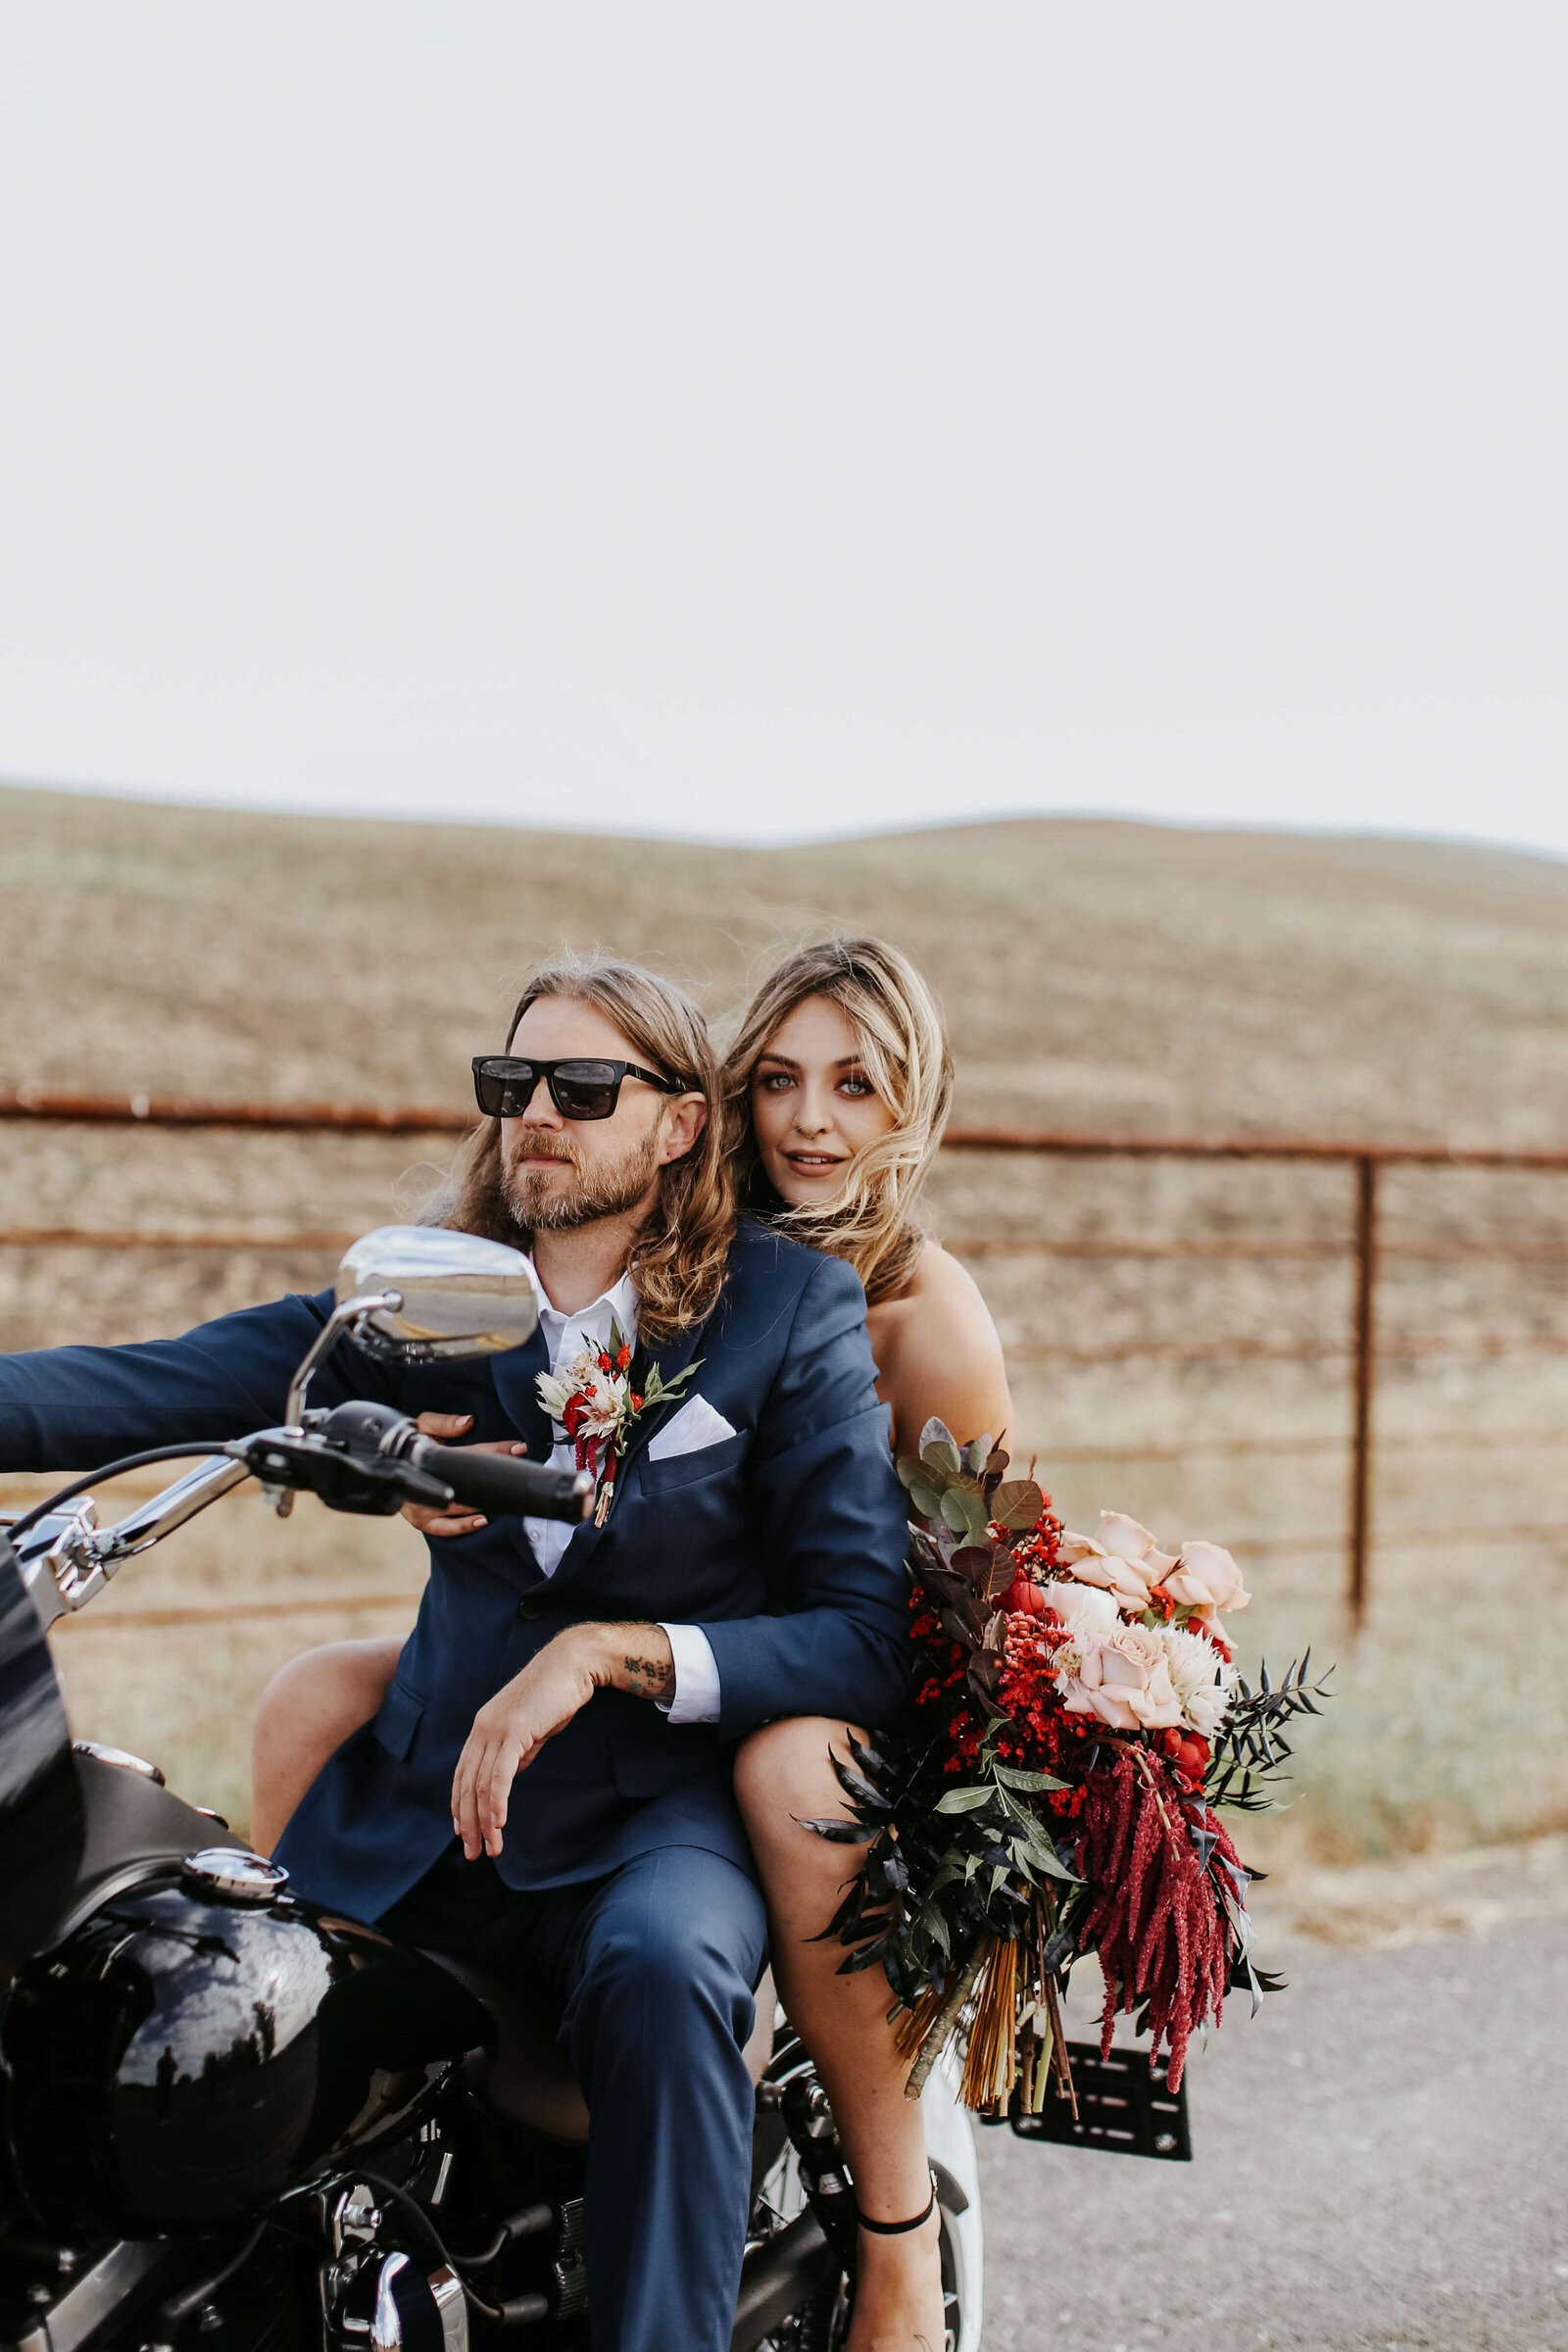 Penngrove-california-elopement-modern-bohemian-sonoma-county-elopement-events-by-gianna-somona-wedding-planner-1